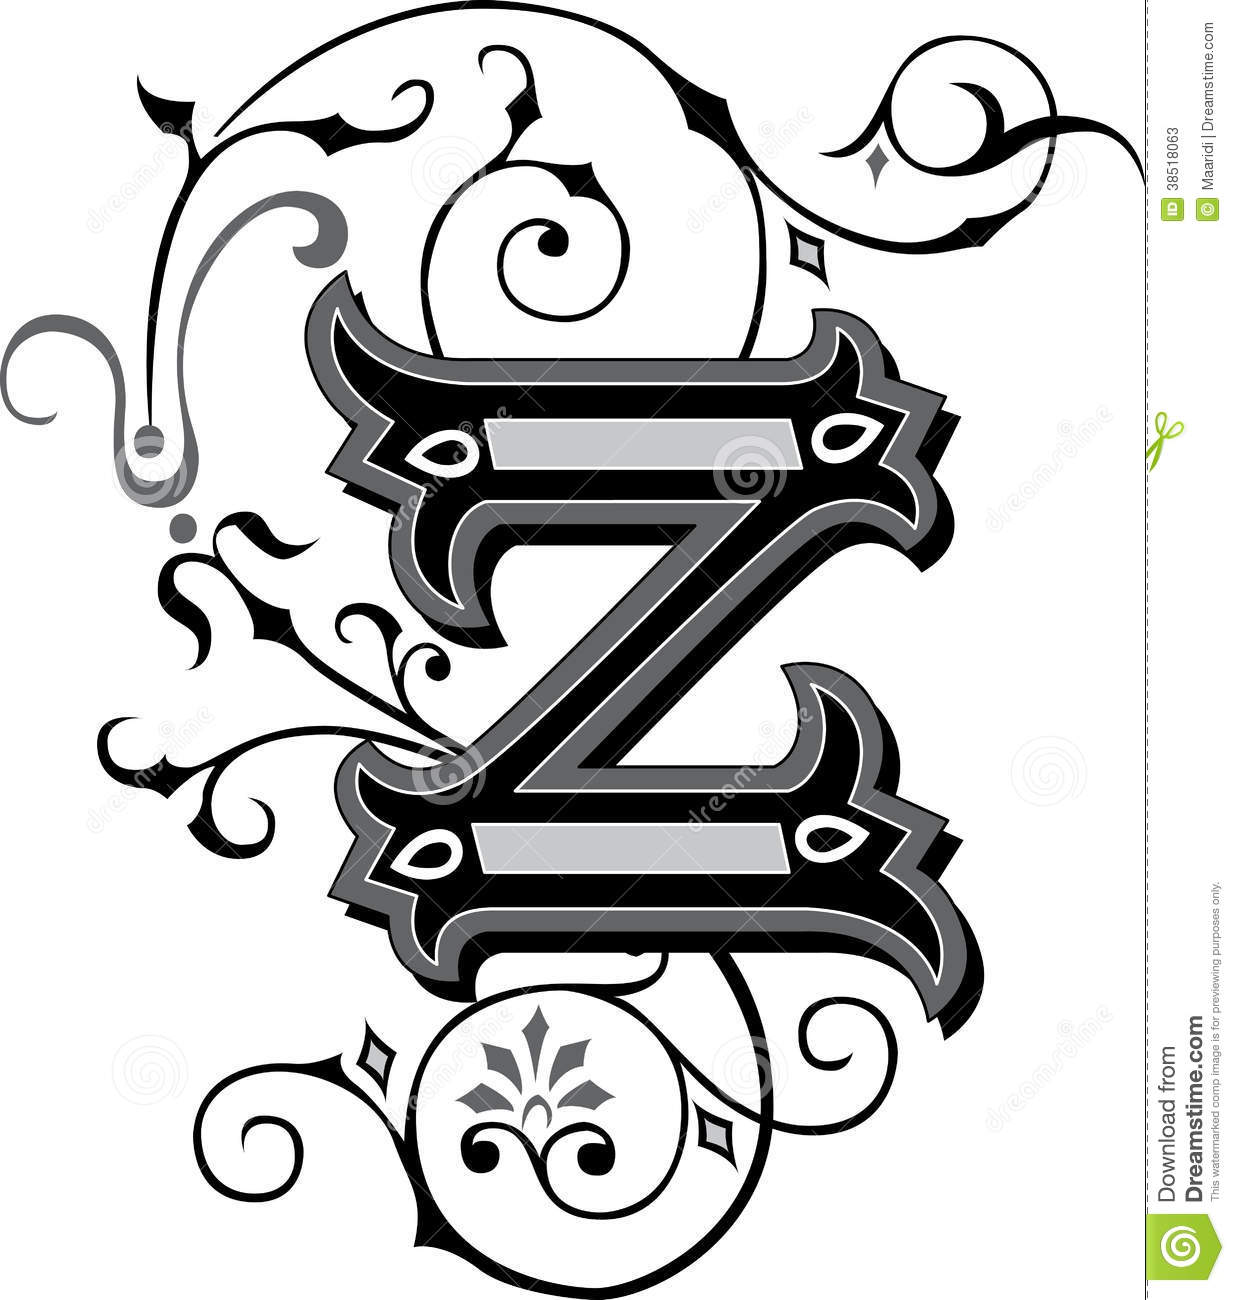 How To Draw 3d Letters A To Z